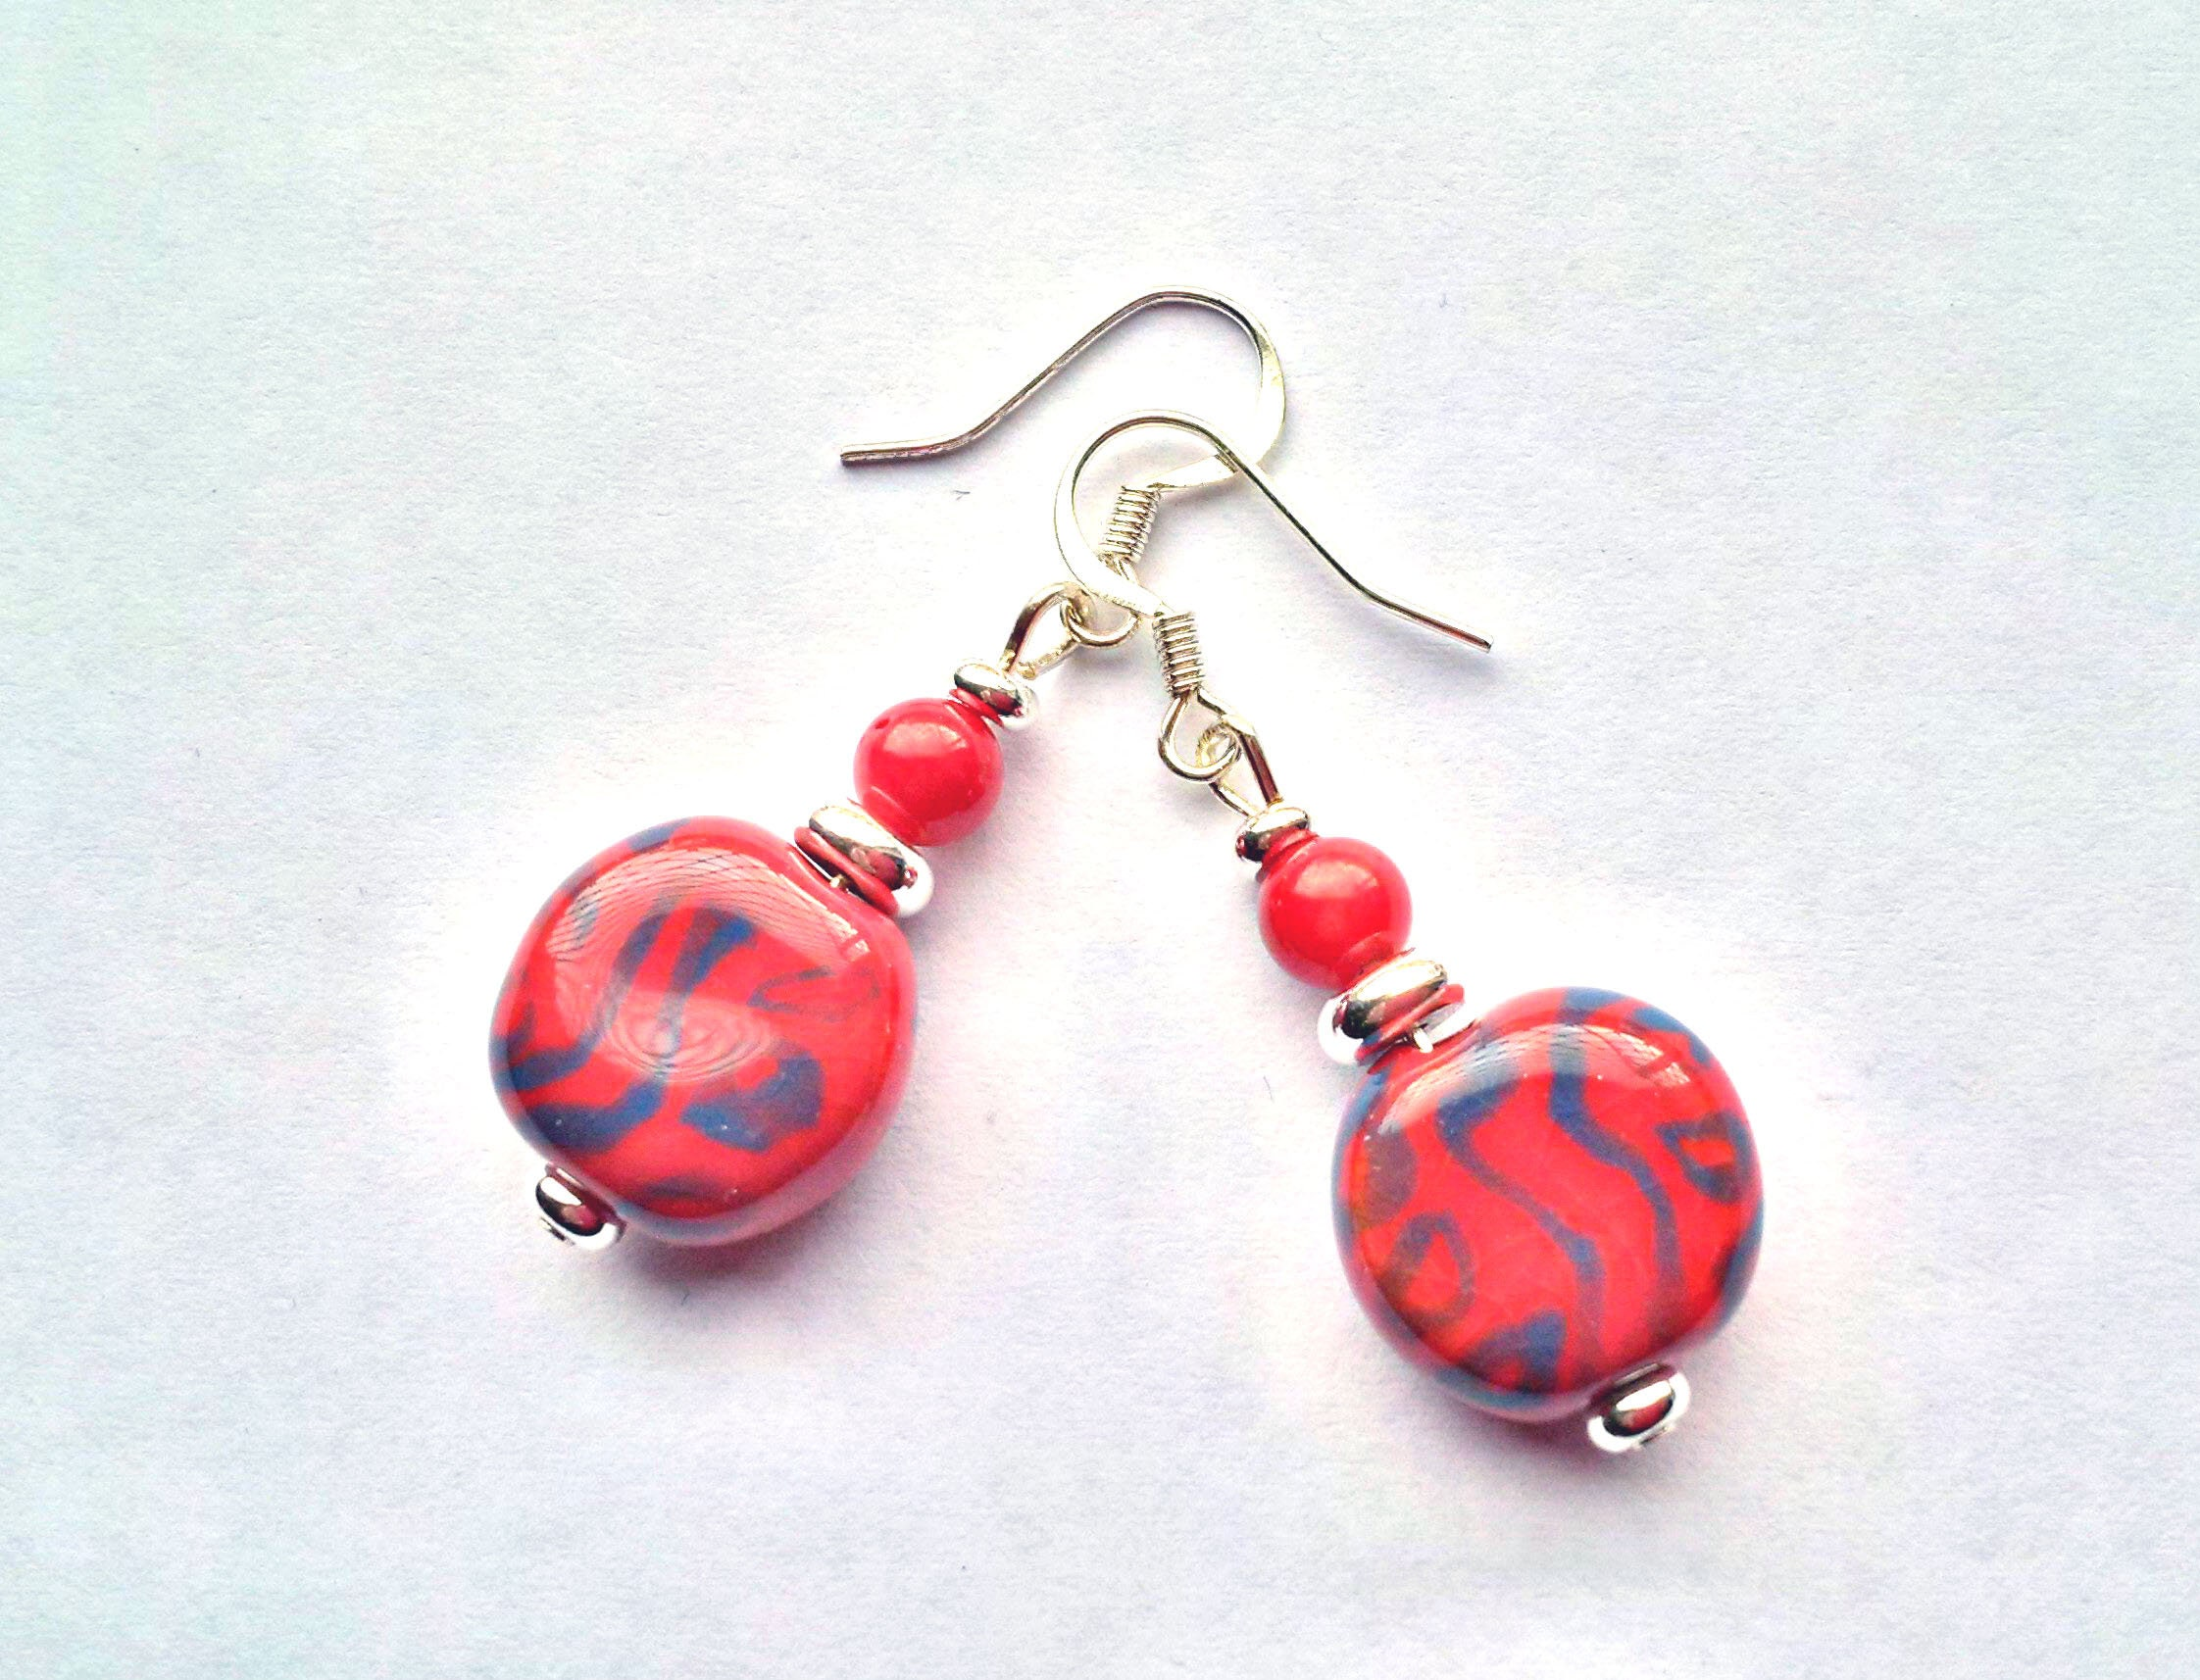 Red and blue patterned ceramic earrings made from Kenyan Kazuri fair trade, hand made and hand painted beads